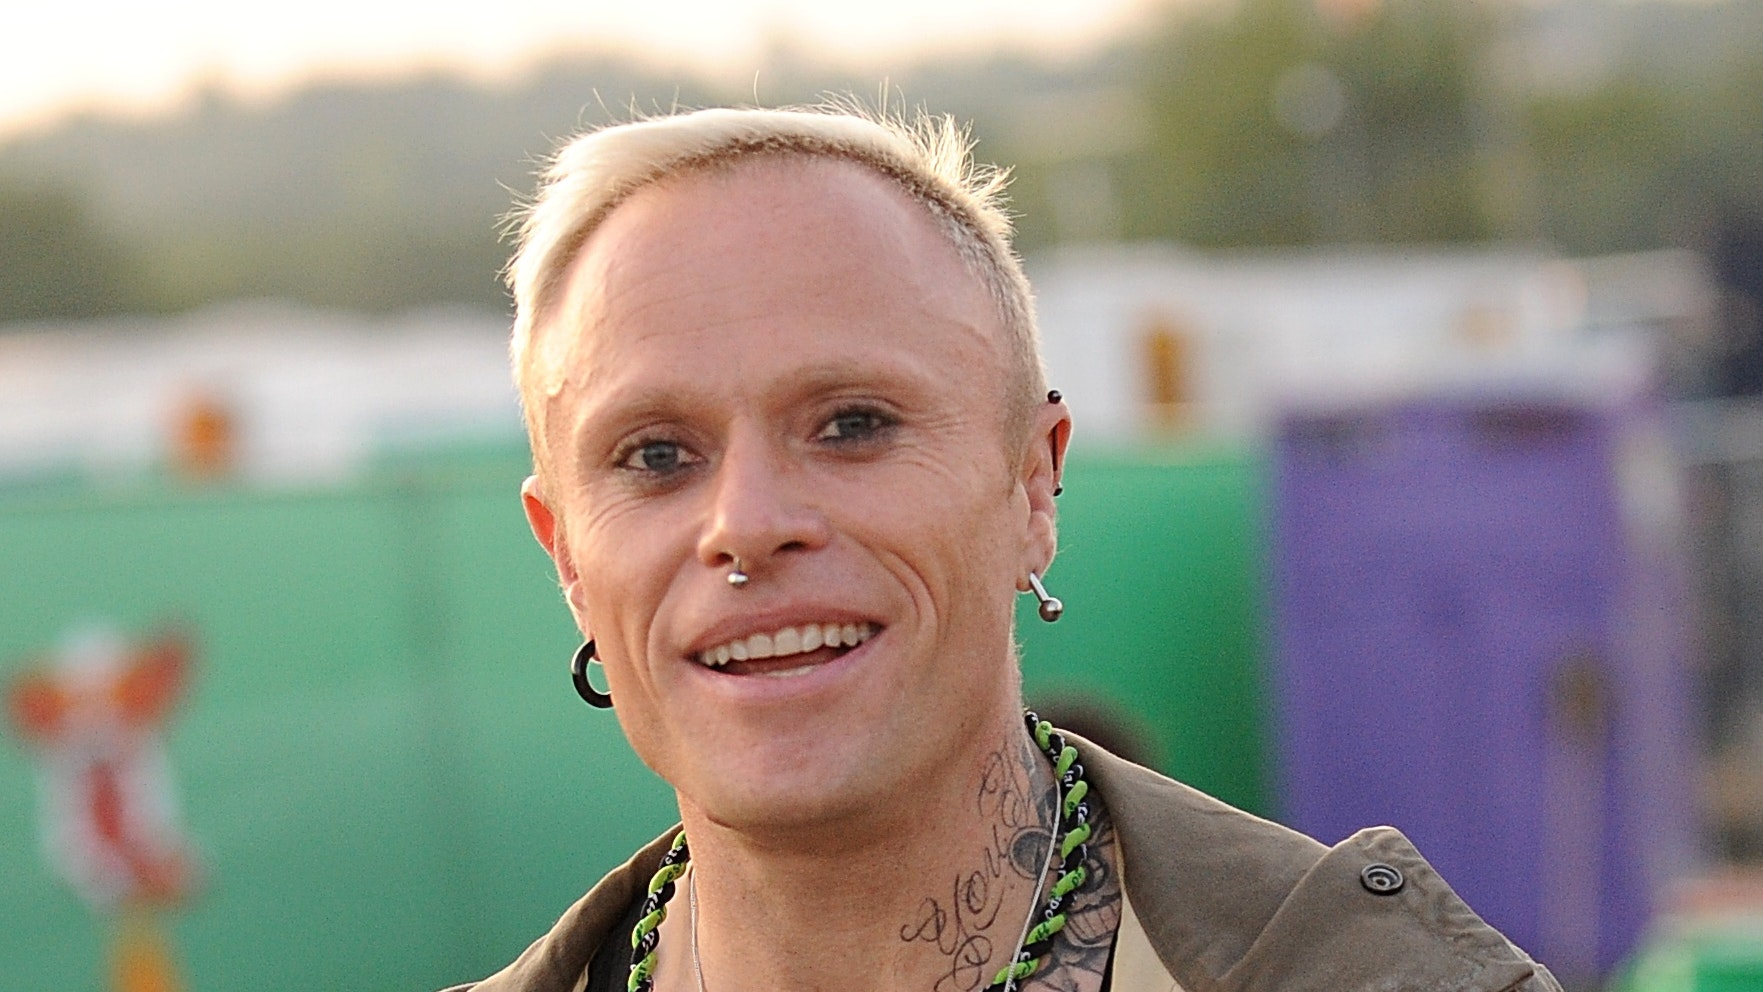 The Prodigy's Keith Flint Died of Hanging